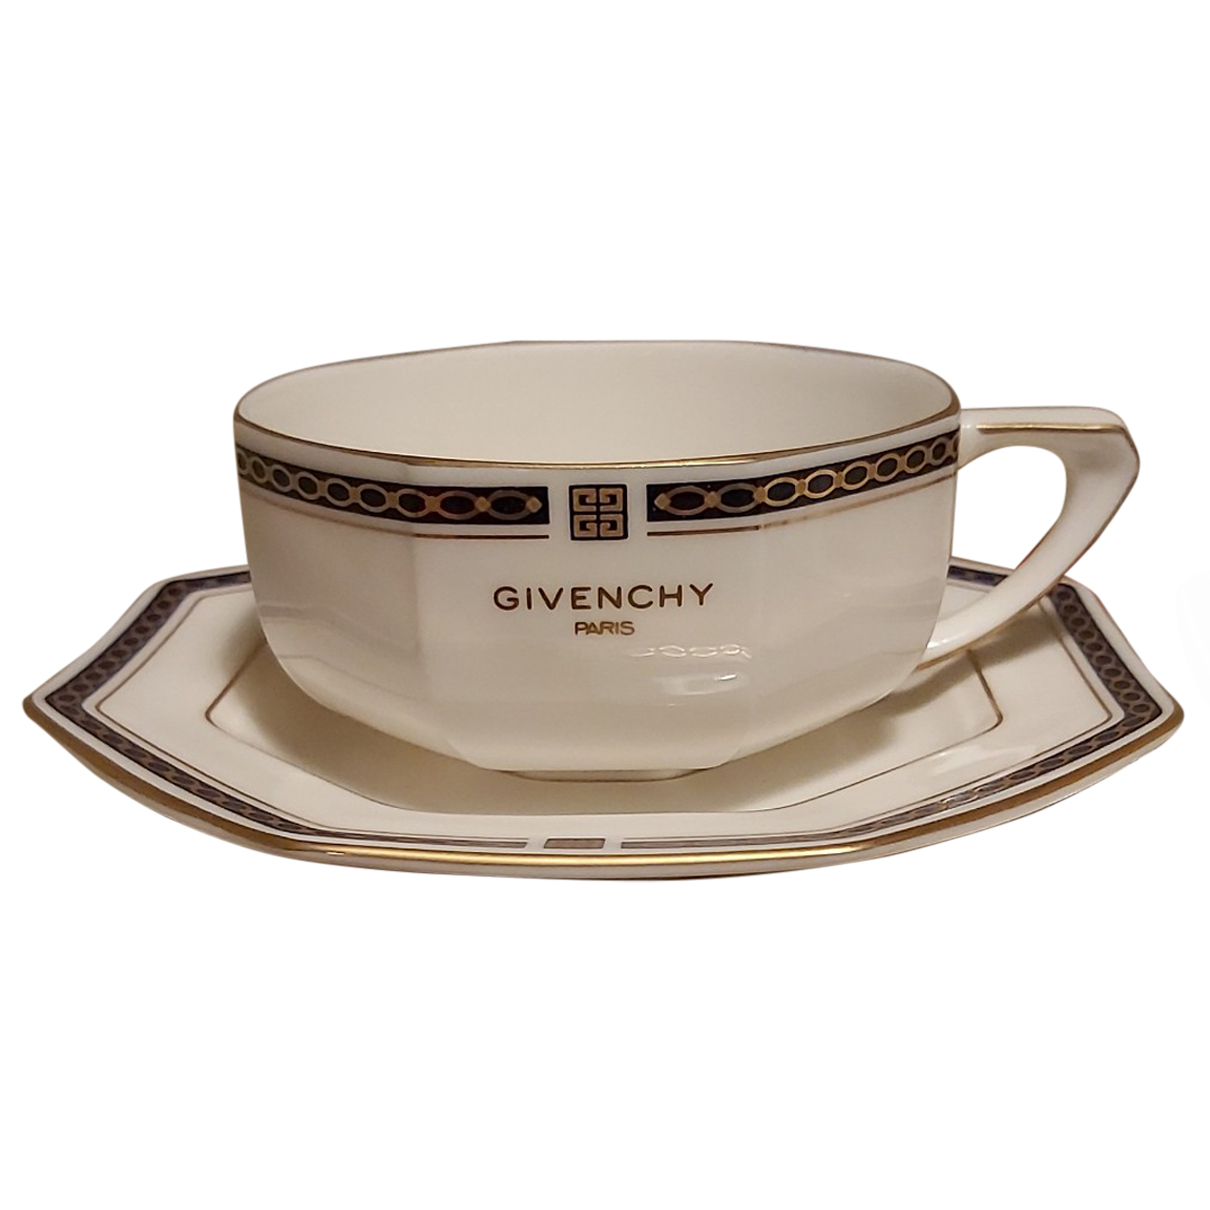 Givenchy - Arts de la table   pour lifestyle en porcelaine - multicolore